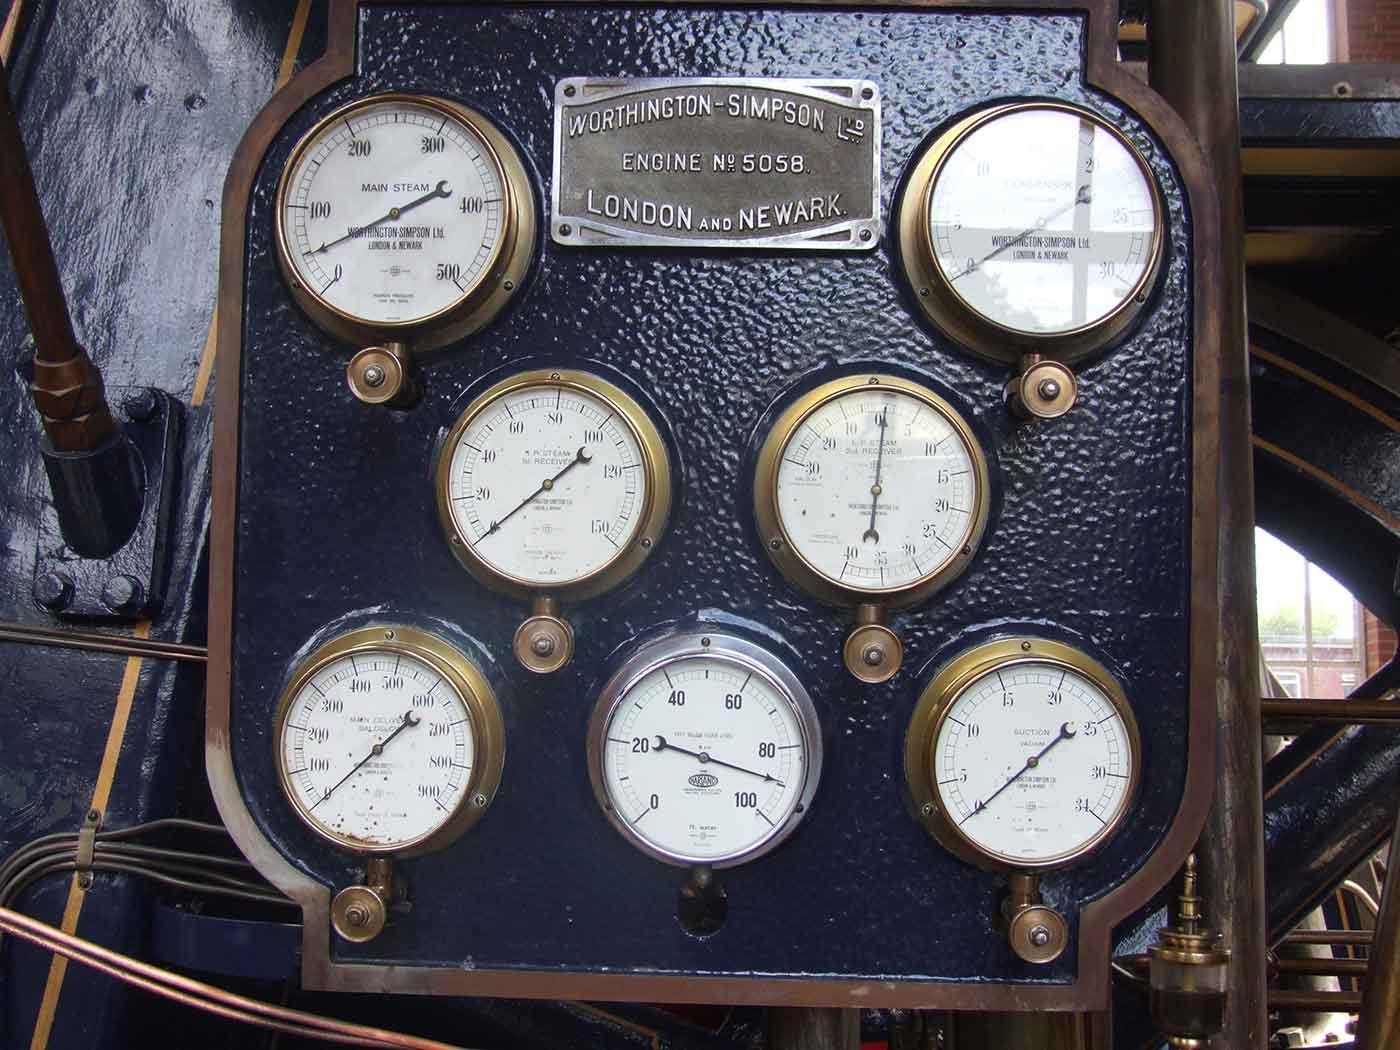 The dashboard of a steam engine